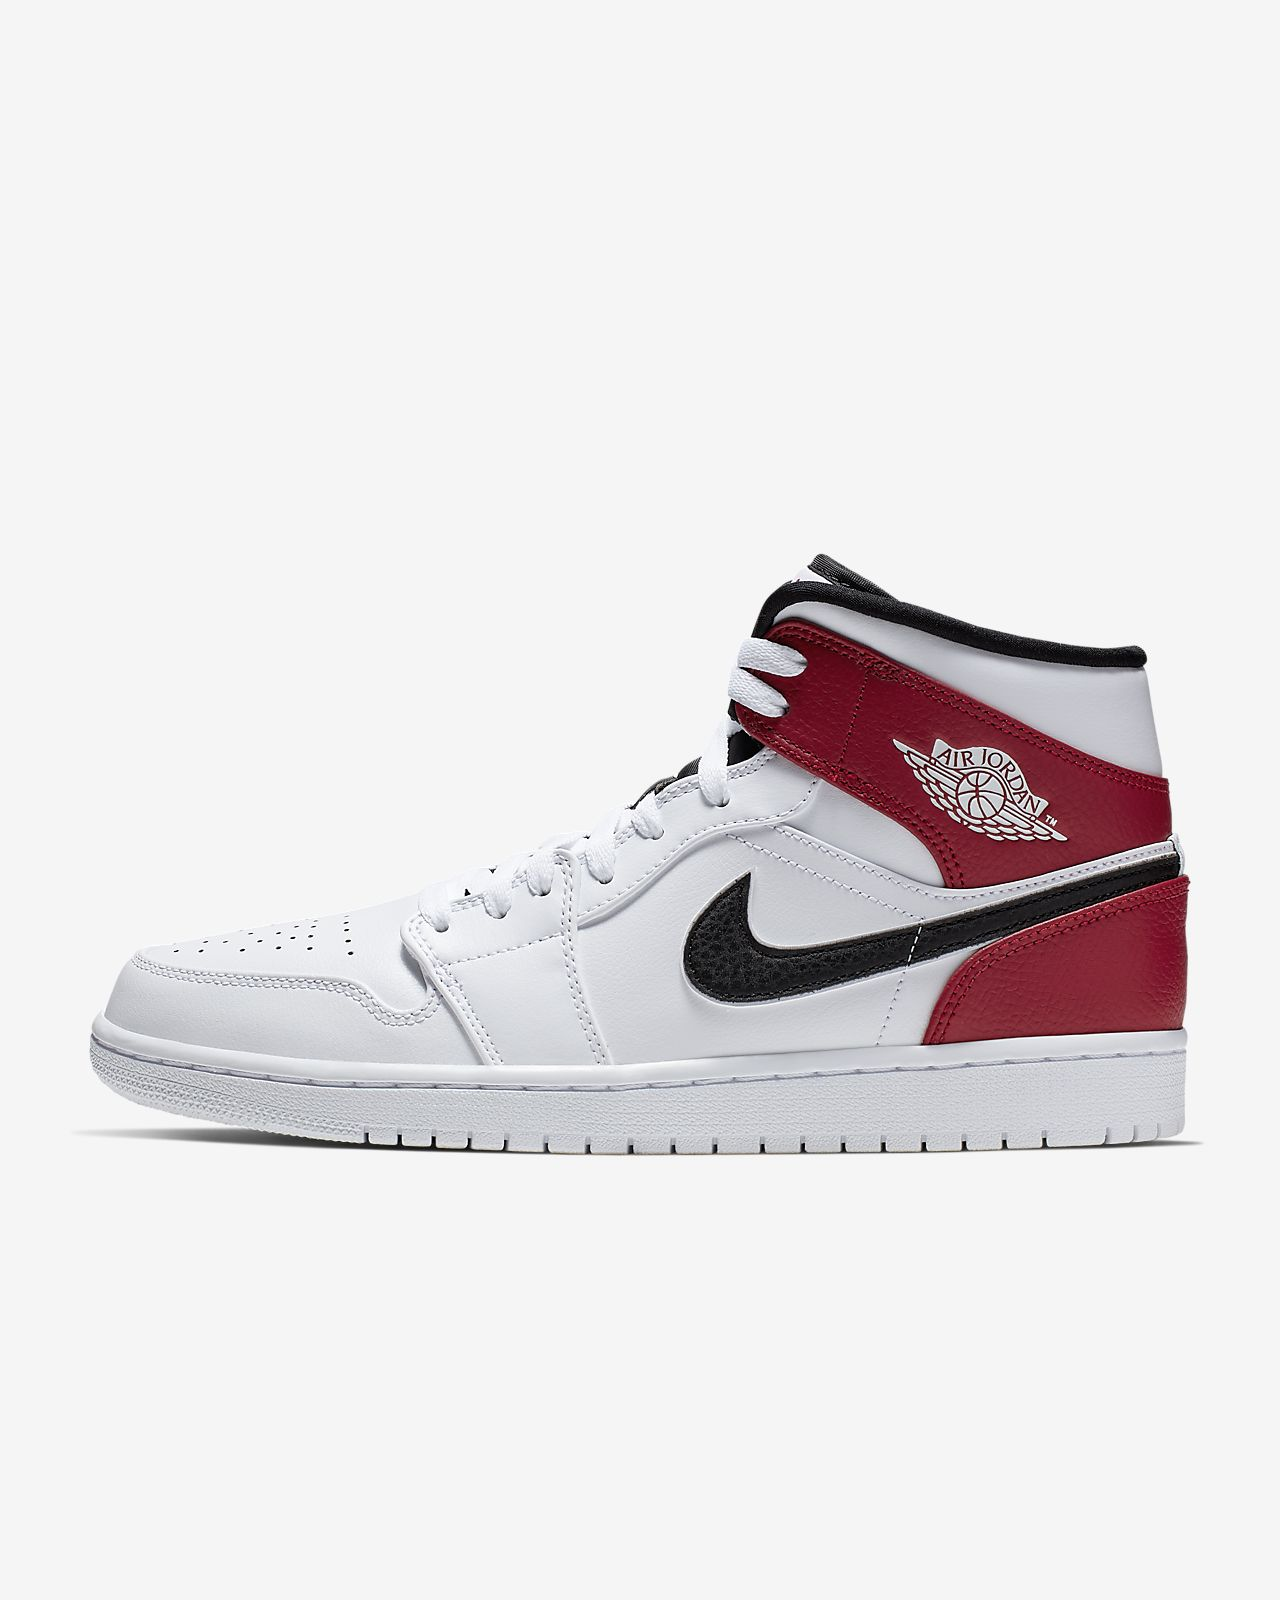 huge selection of 6eff8 528f6 Low Resolution Air Jordan 1 Mid Herrenschuh Air Jordan 1 Mid Herrenschuh